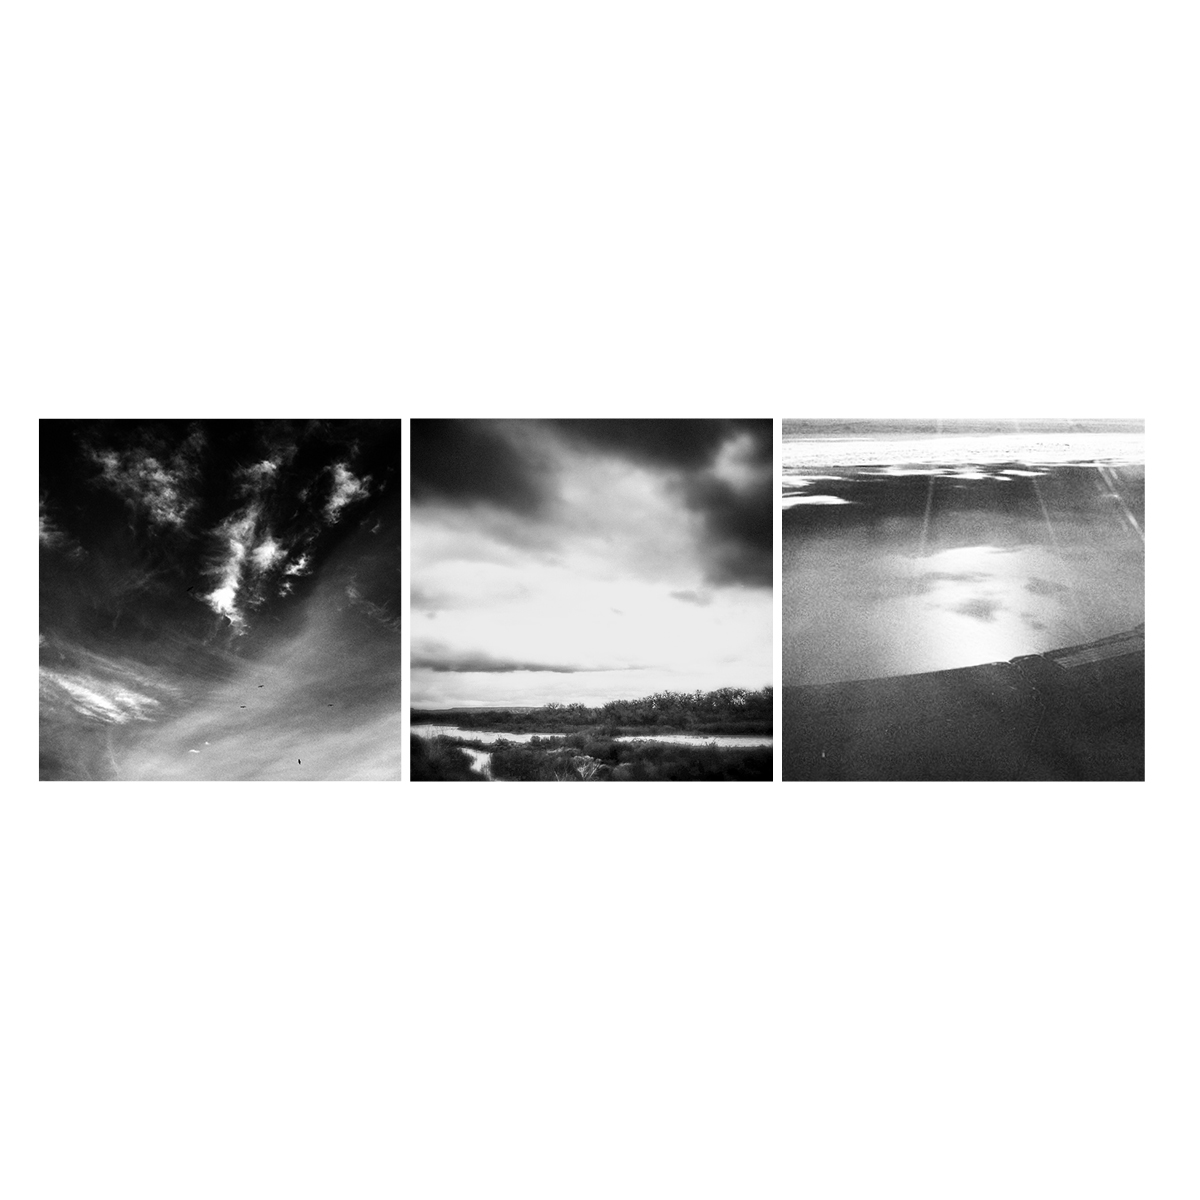 WATER_FINAL_INSIDE_PAGES_21cm44.jpg